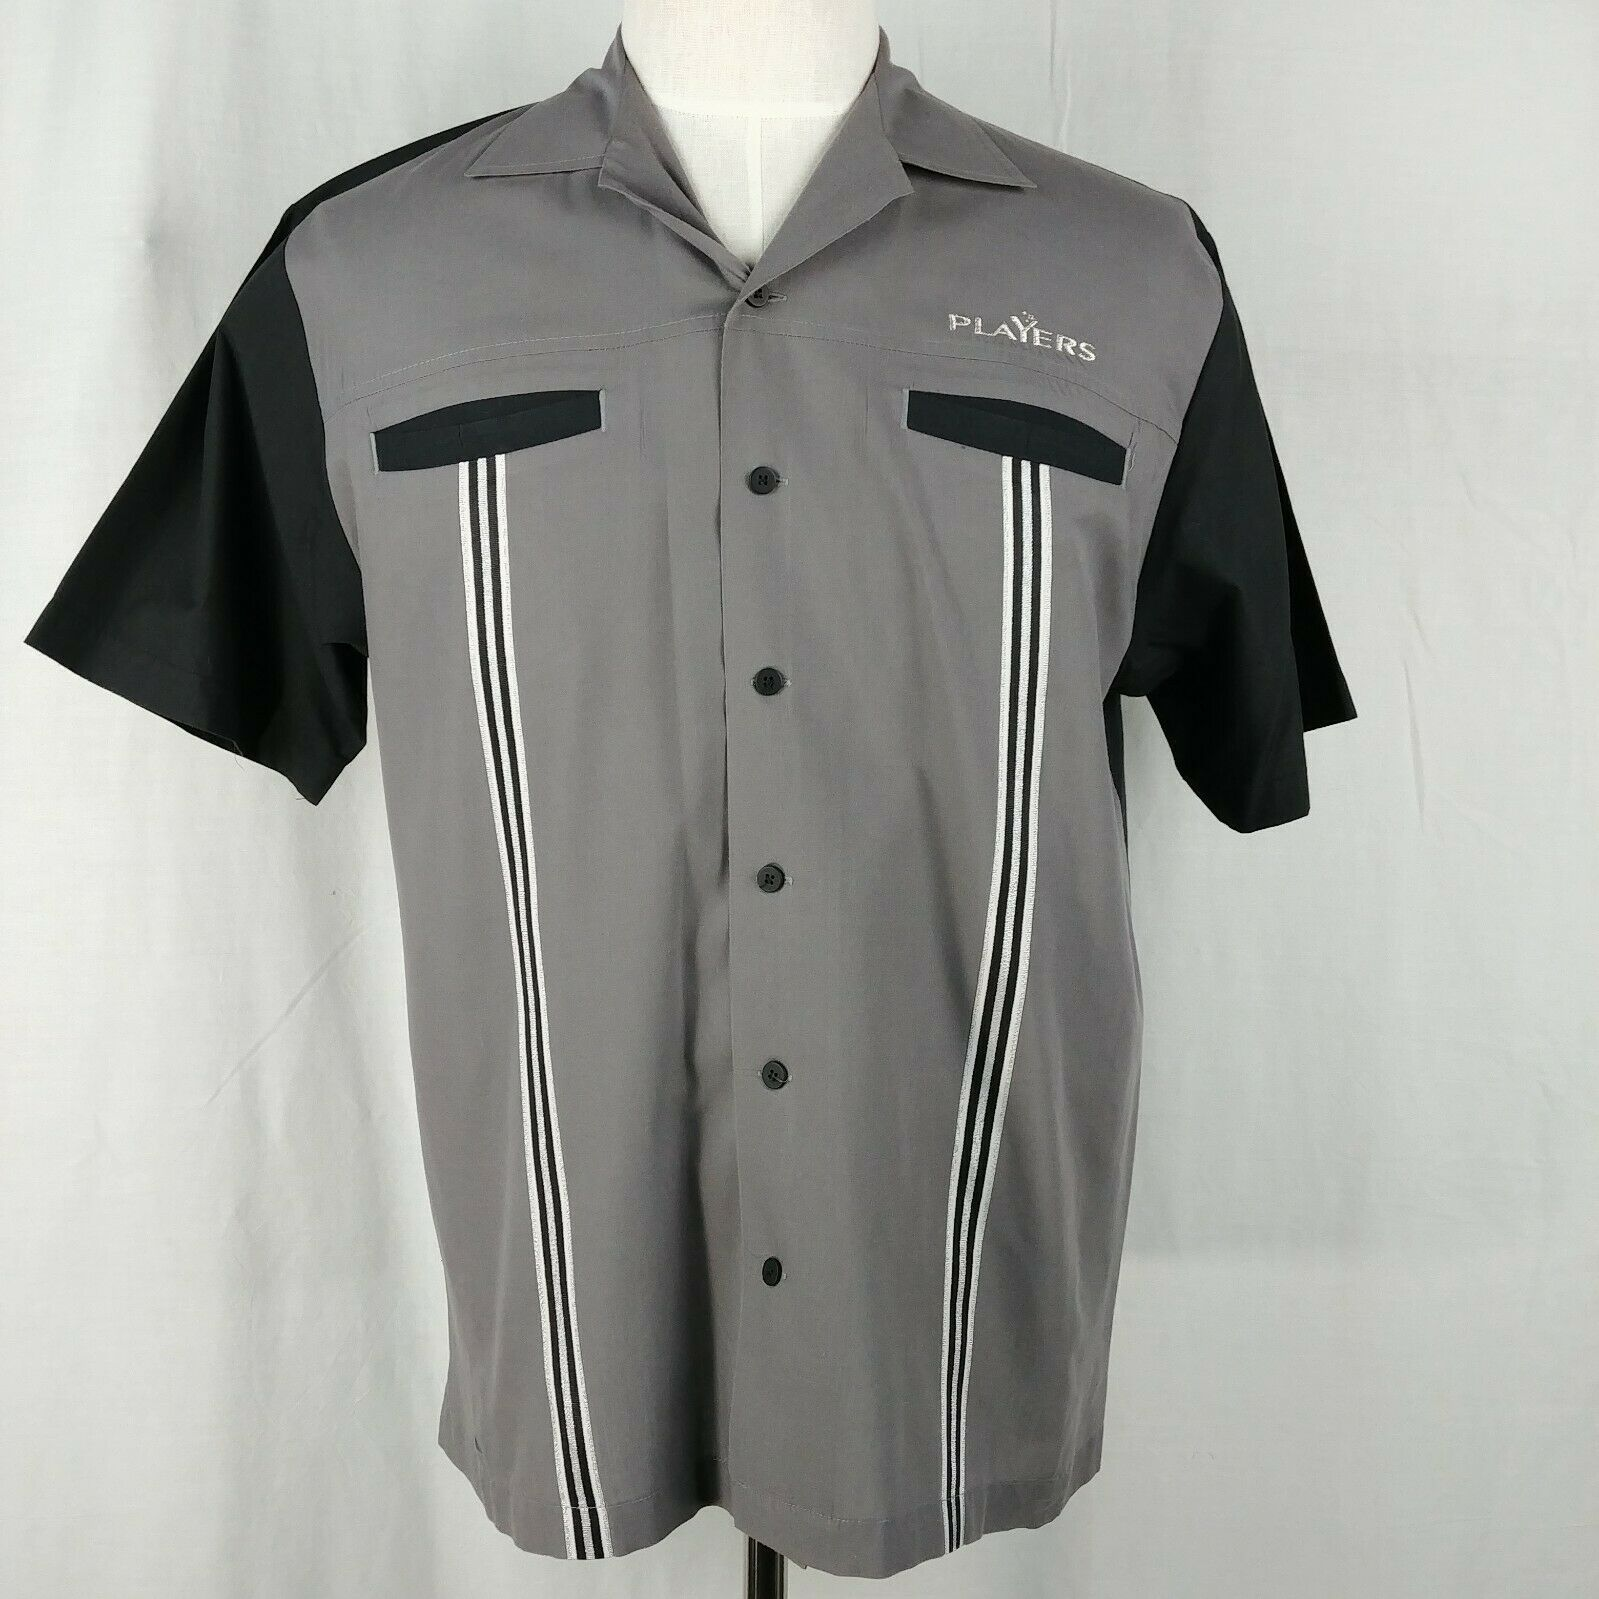 8b4ccc1af ... Shirt M Short Sleeve. 🔍. hilton-corporate-casuals-mens-black-gray- striped-bowling-